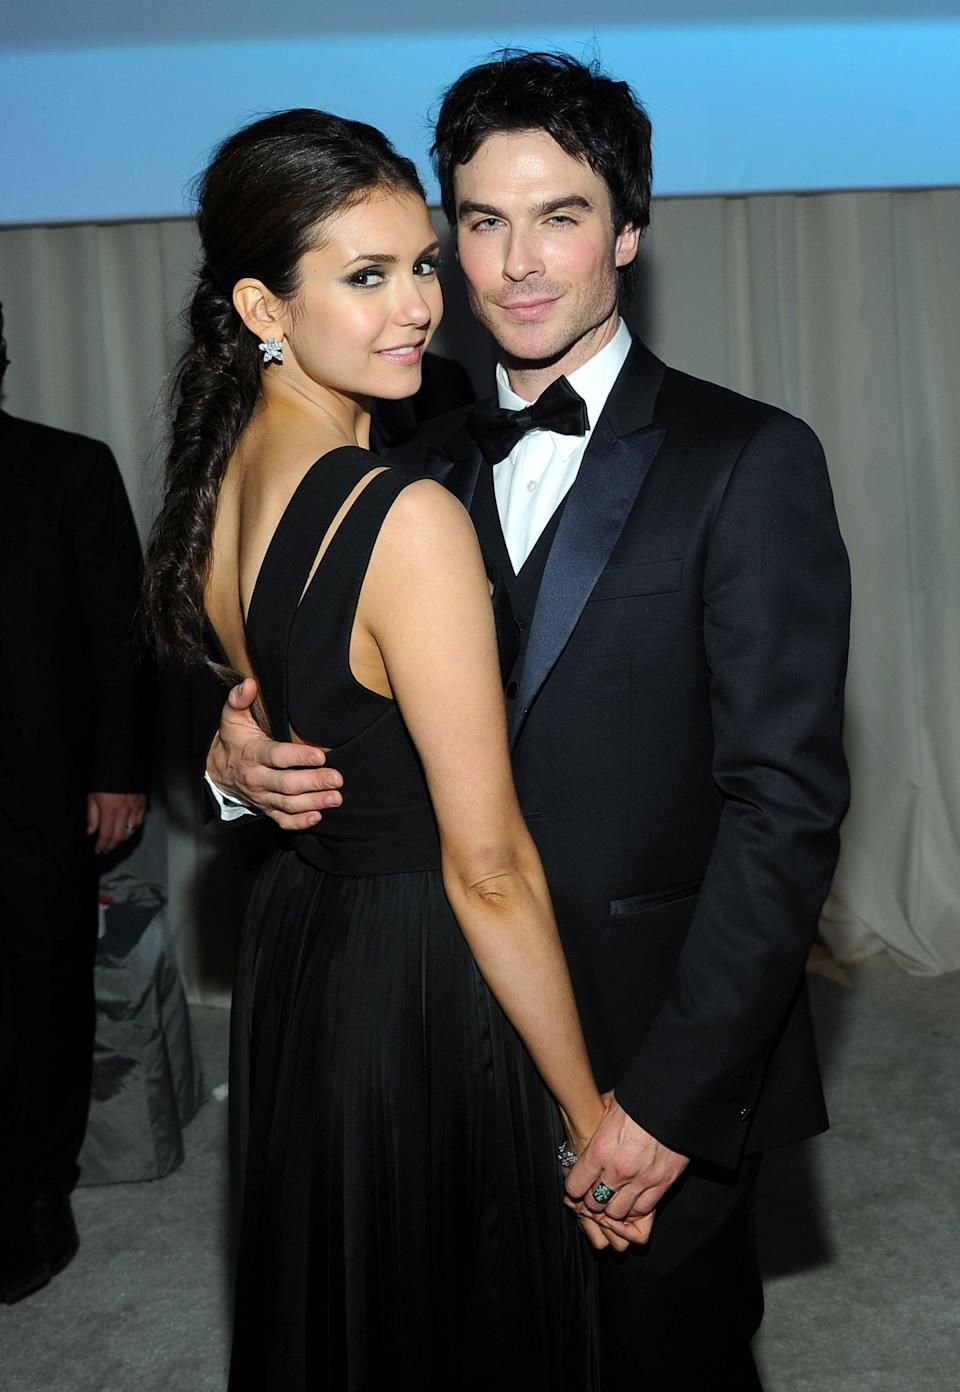 """<p>Nina and Ian met on the set of <strong>Vampire Diaries </strong>in 2009 - where they played on-and-off lovers Damon and Elena - and it wasn't long before the two started dating IRL. After their breakup in 2013, both actors remained on the series until its finale in 2017 (though in 2015, Nina went from a main cast member to a guest on the series).</p> <p>Even now, <a href=""""http://www.eonline.com/news/655943/nina-dobrev-breaks-silence-on-ian-somerhalder-s-beautiful-wedding"""" class=""""link rapid-noclick-resp"""" rel=""""nofollow noopener"""" target=""""_blank"""" data-ylk=""""slk:the actors remain close friends"""">the actors remain close friends</a>. As Nina told <strong>E! News</strong> in May 2015, """"I've said this before, that we didn't break up because anything bad happened or because there wasn't love or friendship. I love him and the friendship is still strong and I think he's great and I care about him. And that didn't change. Yes, we're professional and that's fine. We were friends long before we dated and we still are now.""""</p> <p><a href=""""http://www.eonline.com/news/498049/nina-dobrev-talks-people-s-choice-moment-with-ian-somerhalder-it-was-just-honest"""" class=""""link rapid-noclick-resp"""" rel=""""nofollow noopener"""" target=""""_blank"""" data-ylk=""""slk:The two even hilariously addressed their split"""">The two even hilariously addressed their split</a> onstage after winning the best chemistry award at the 2014 People's Choice Awards. Of the moment, Nina told <strong>E! News</strong>, """"I was trying to figure out, like what do you say in that situation? We were like, well, we're cool, we're friends and costars. He's a great person, I'm a great person . . . I mean, I think I'm pretty awesome. So it doesn't need to be awkward and I think everyone expected it to be so awkward. We made fun of ourselves and just had fun.""""</p>"""